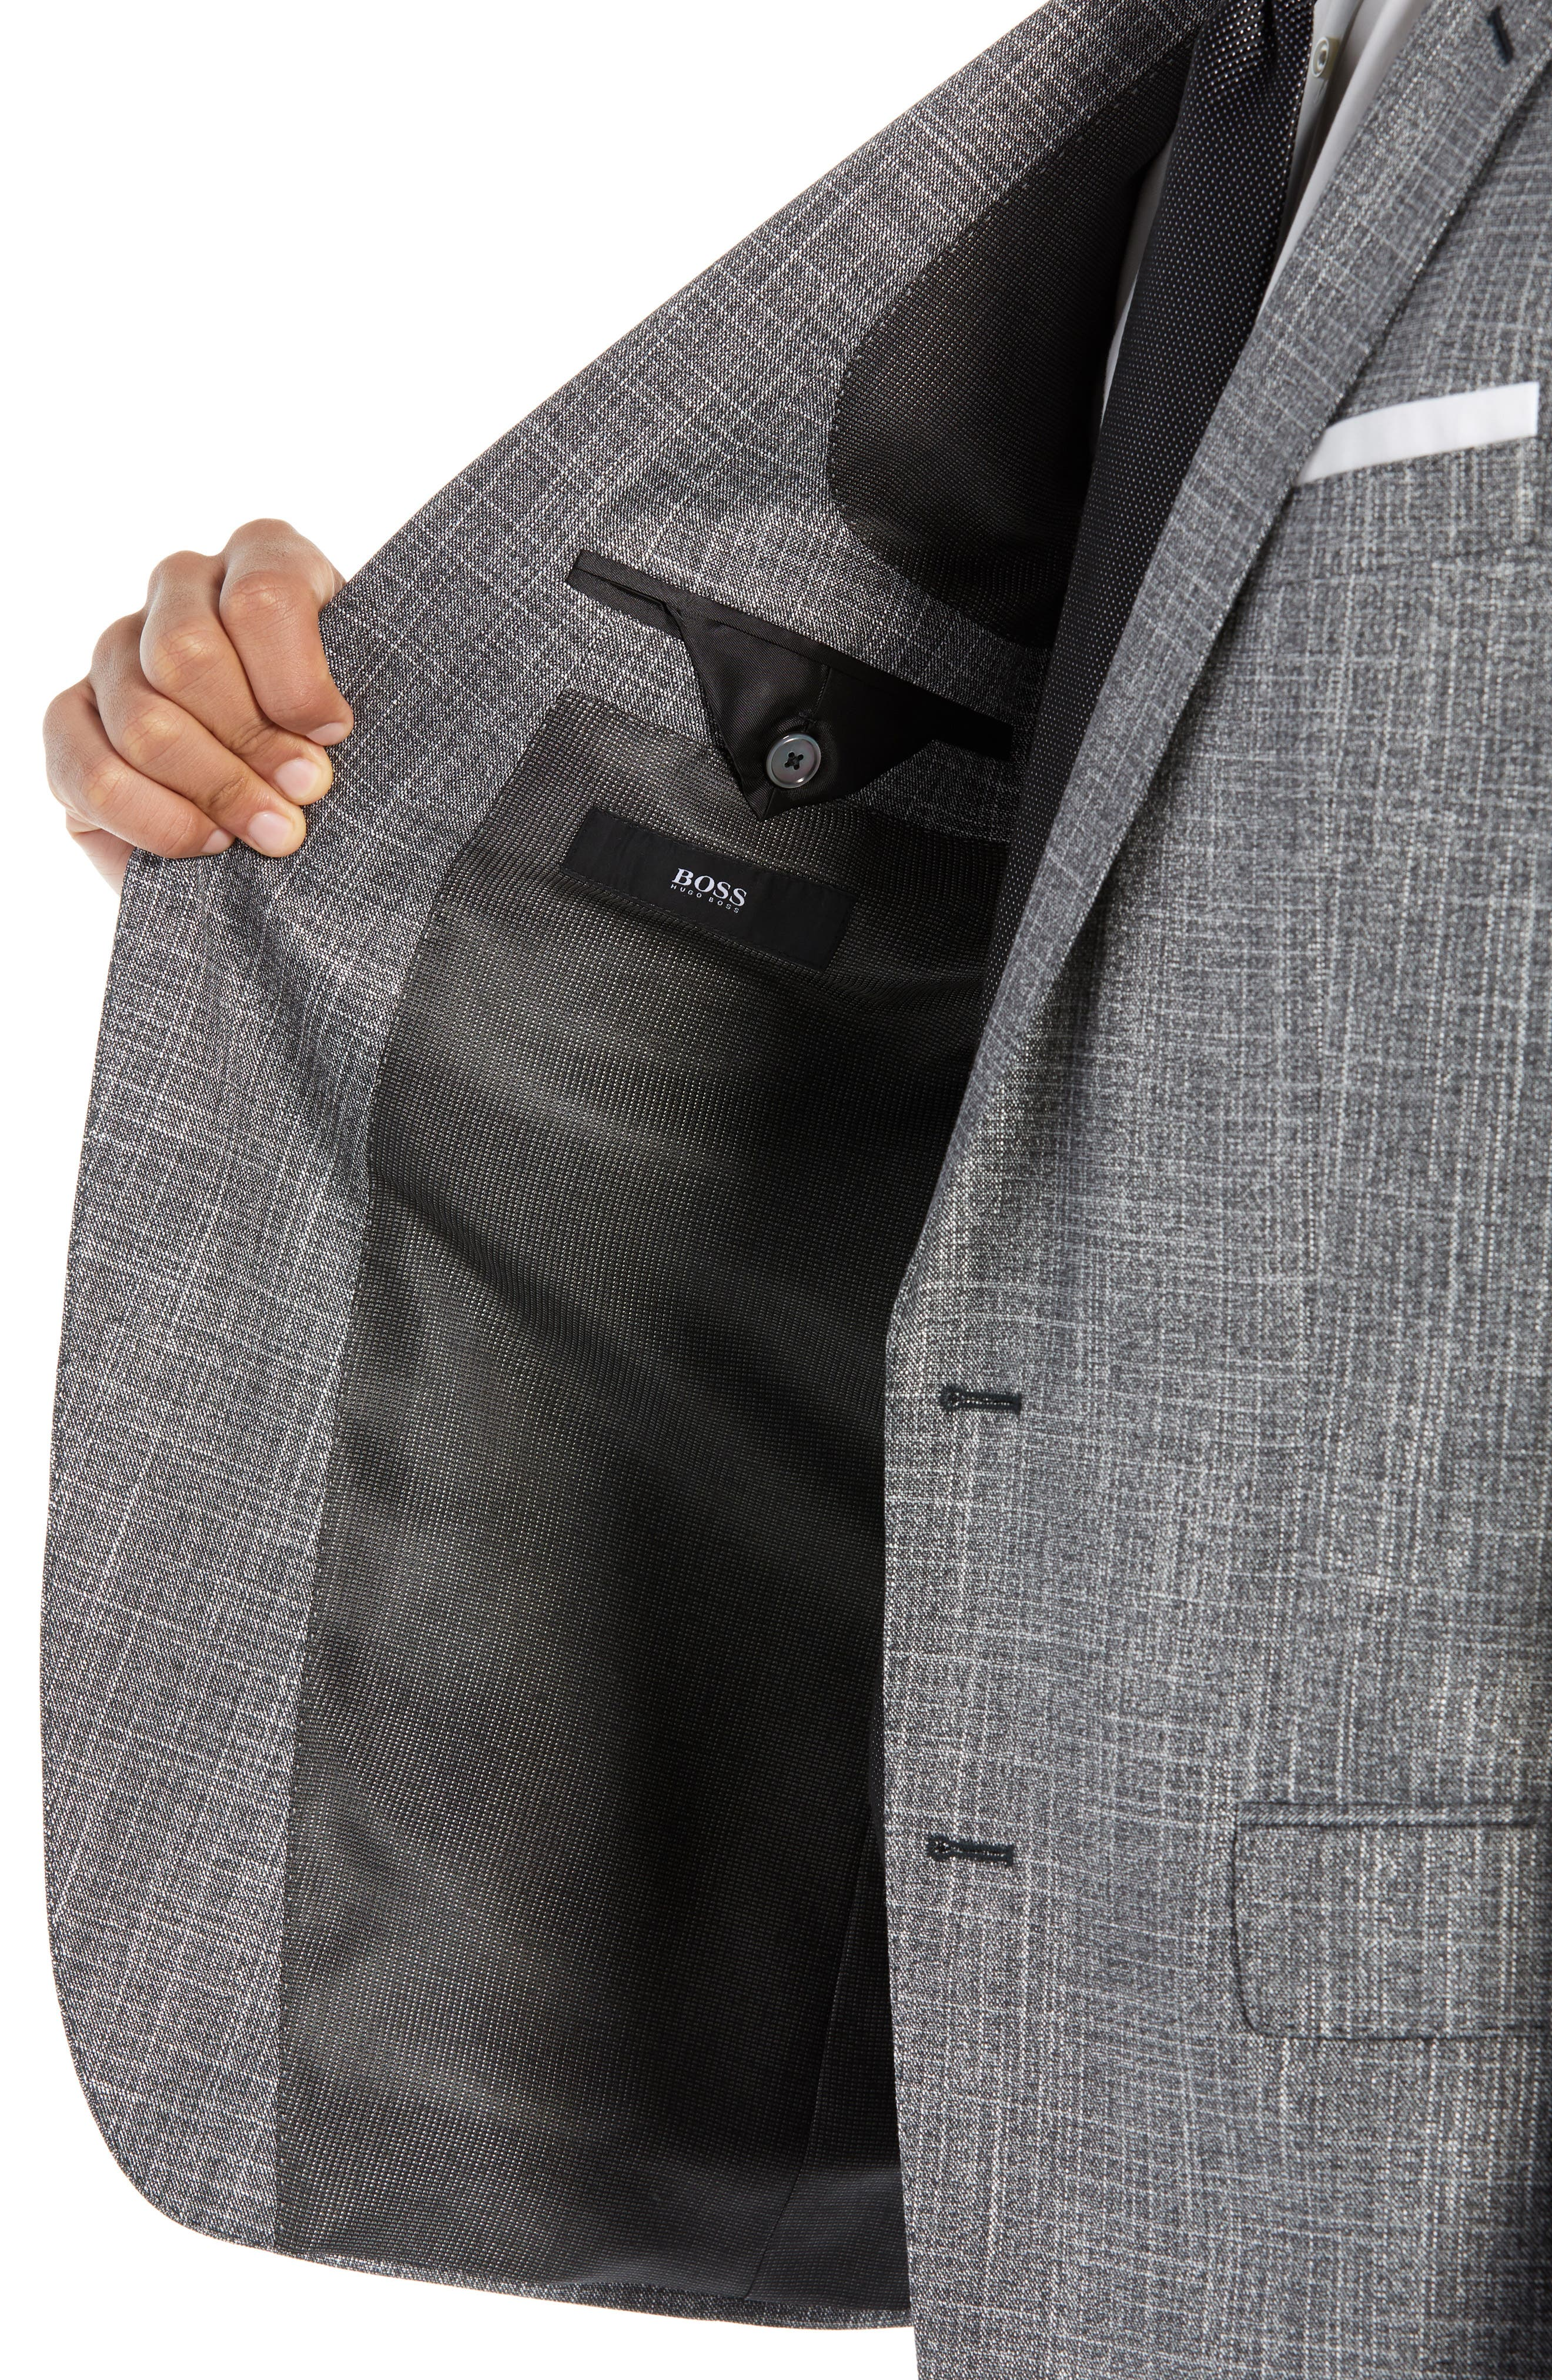 BOSS, Hutson/Gander Slim Fit Solid Wool Blend Suit, Alternate thumbnail 4, color, MEDIUM GREY